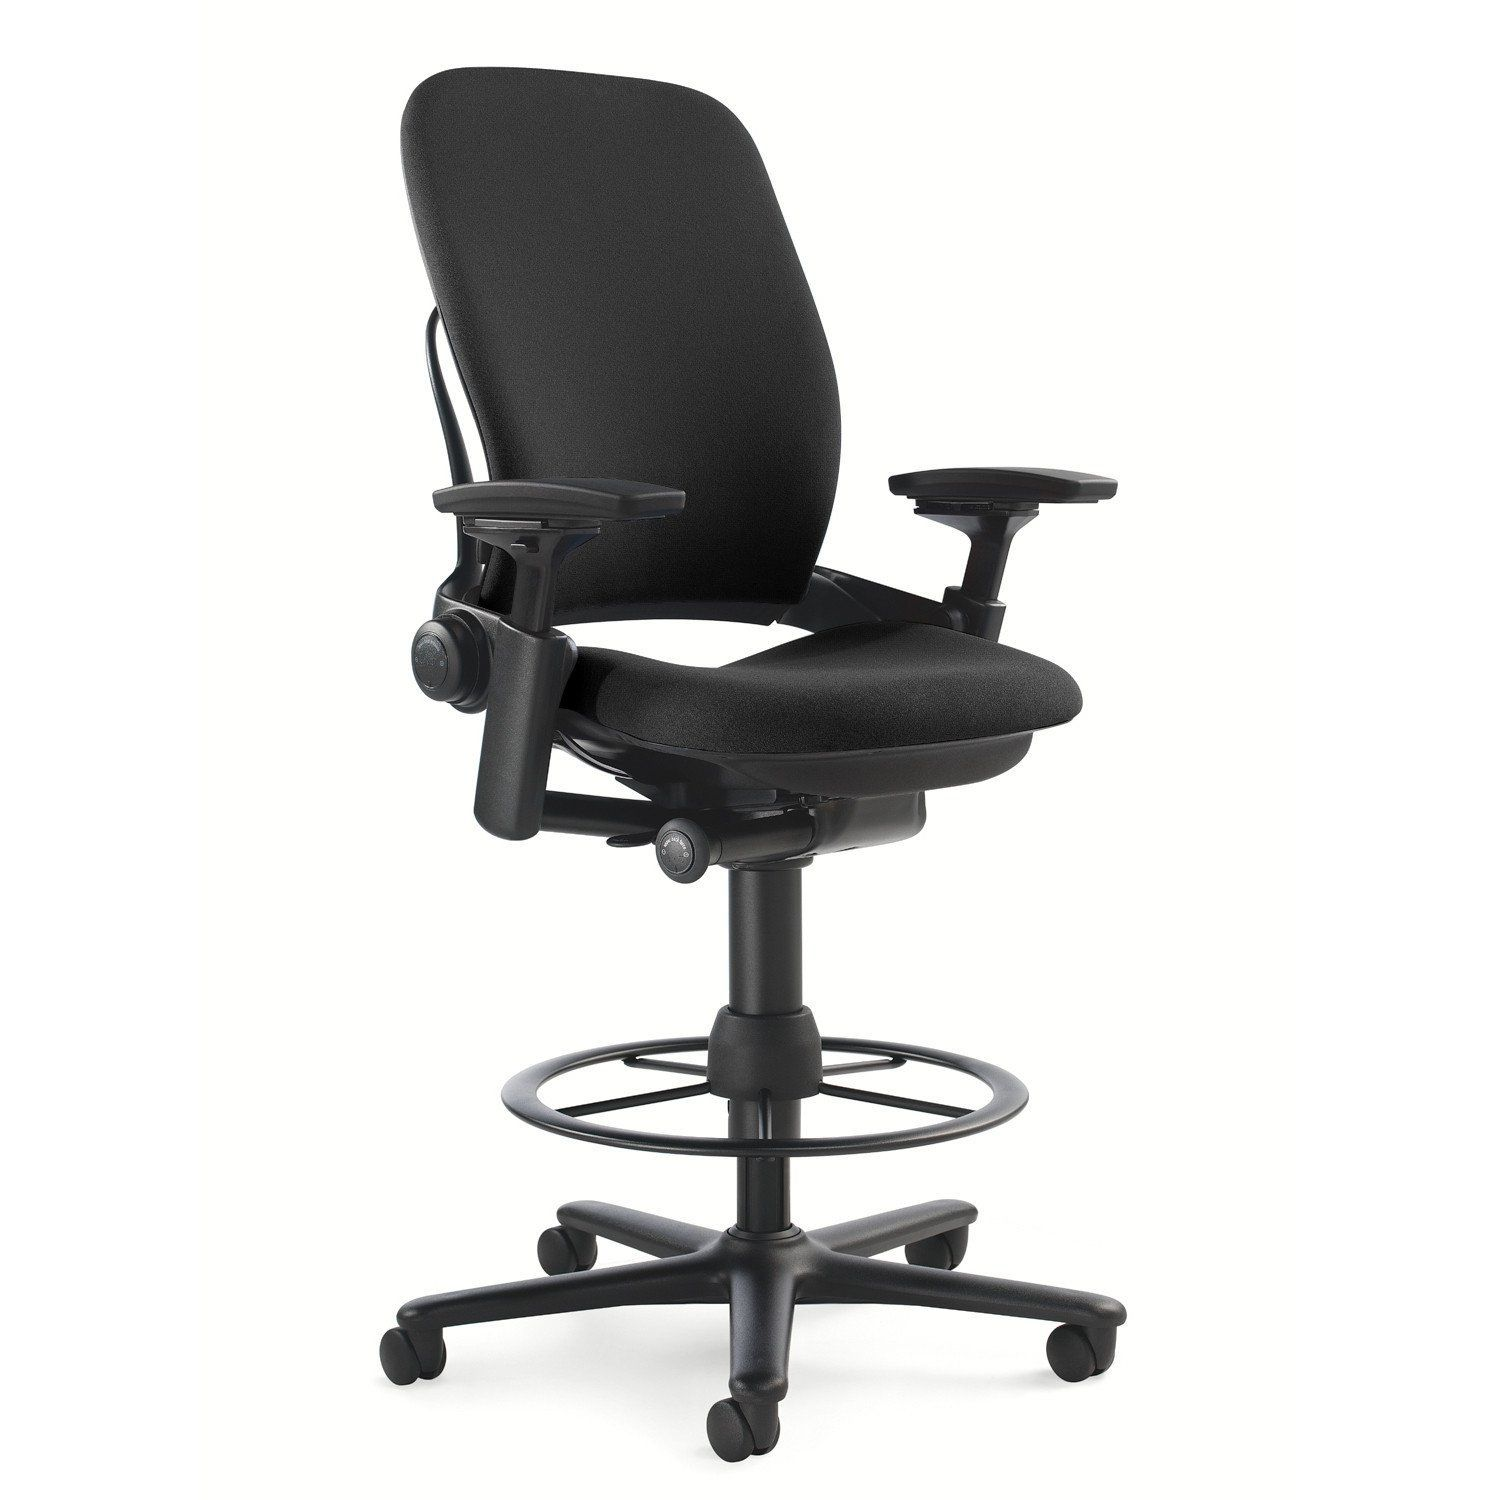 Tall Office Chair For Standing Desk Luxury Living Room Set Check More At Http